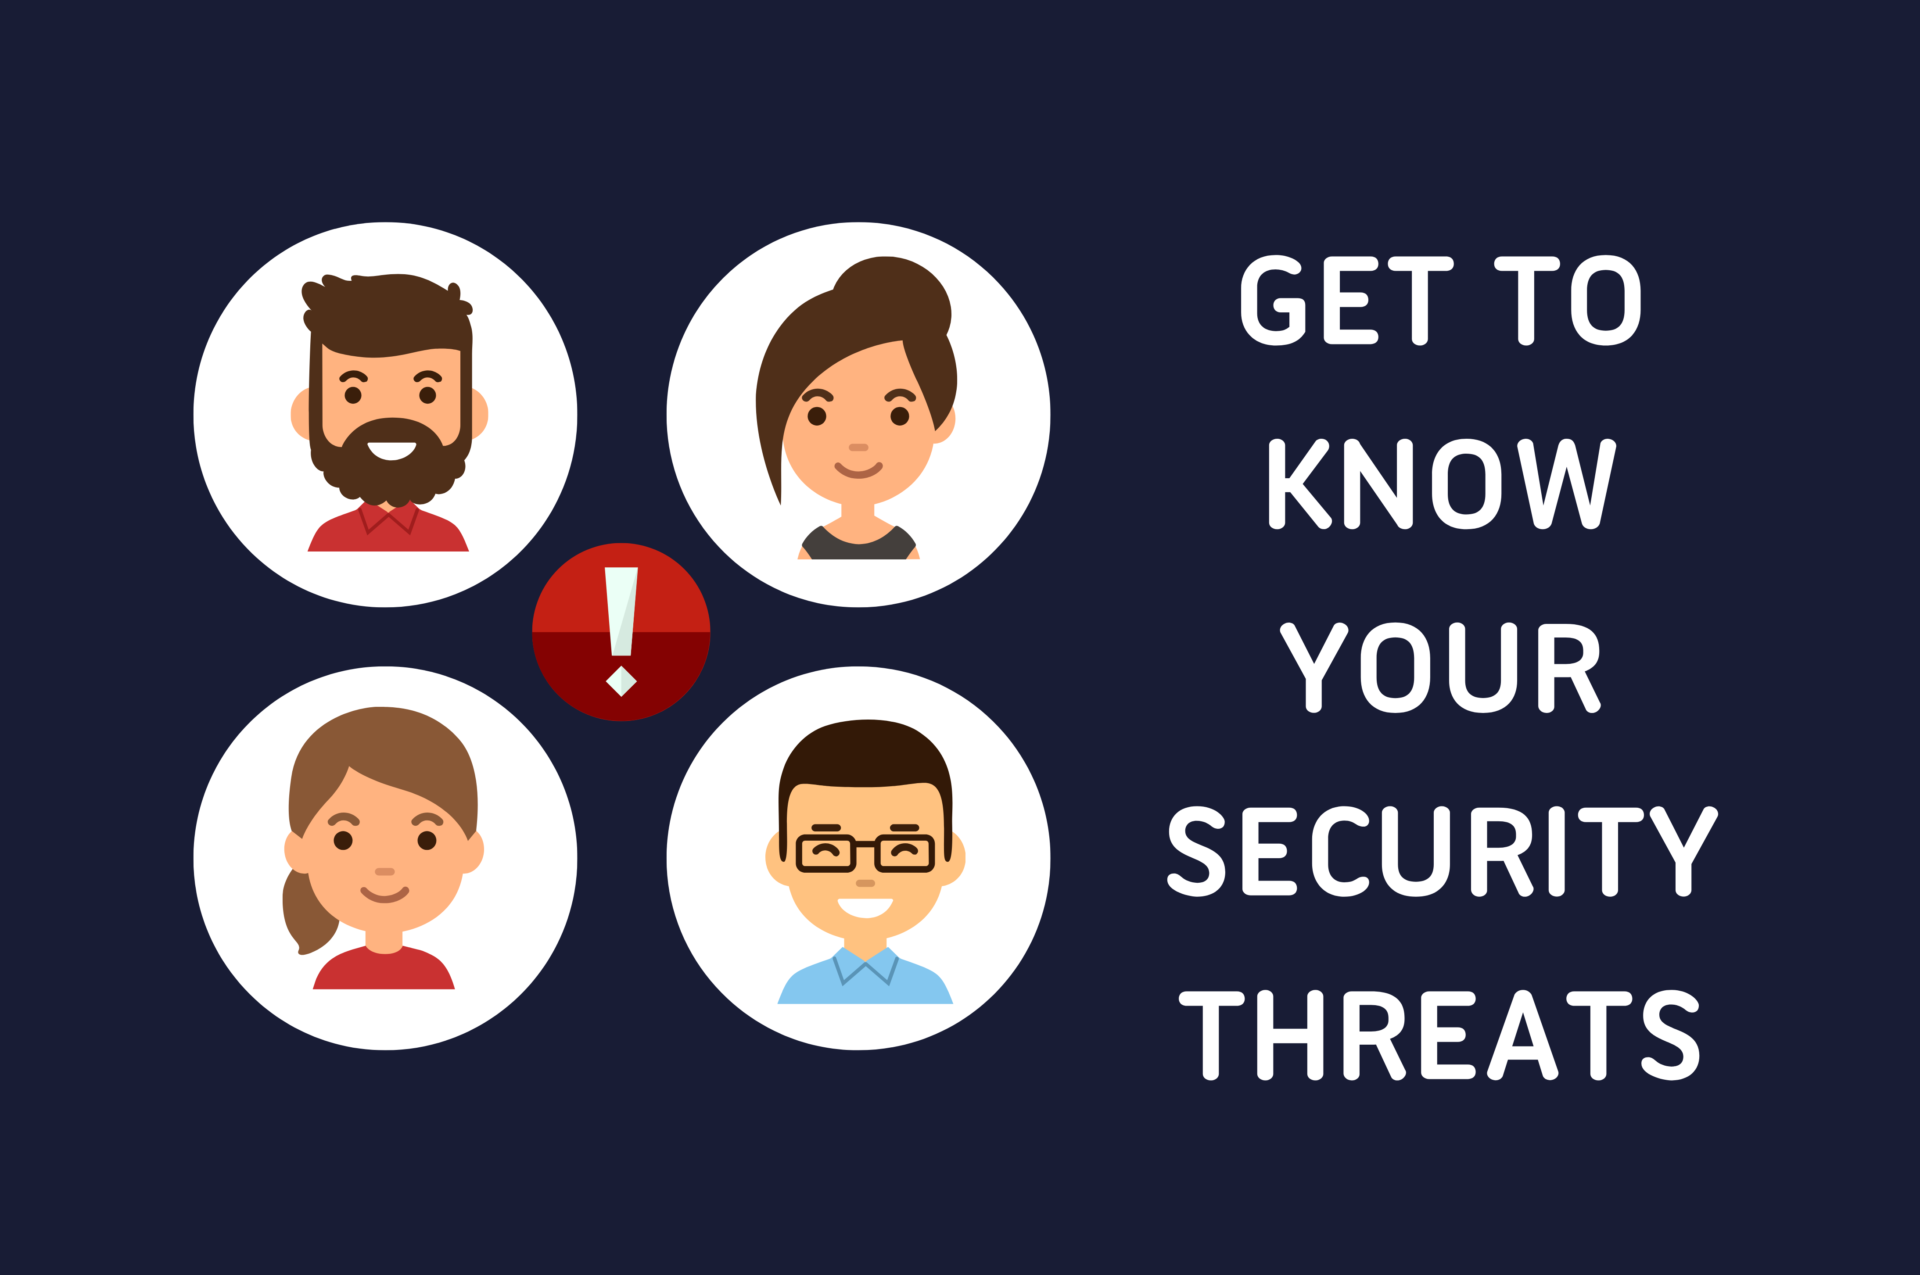 Faces representing security threats with a warning exclamation mark in a red circle.